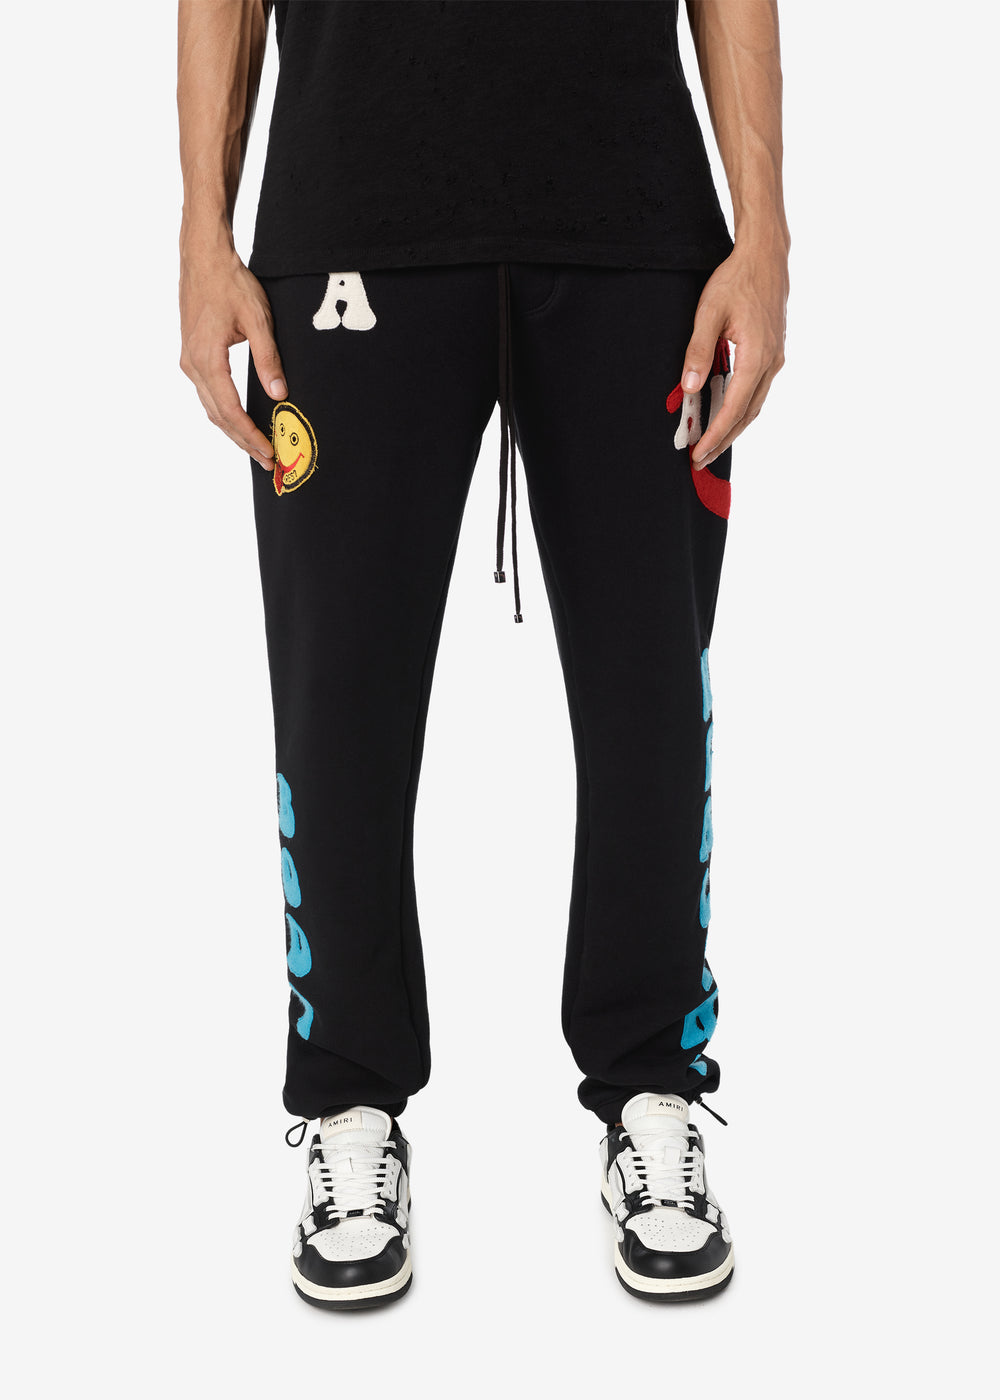 A LOVE MOVEMENT HEALTHY BODY SWEATPANTS - BLACK